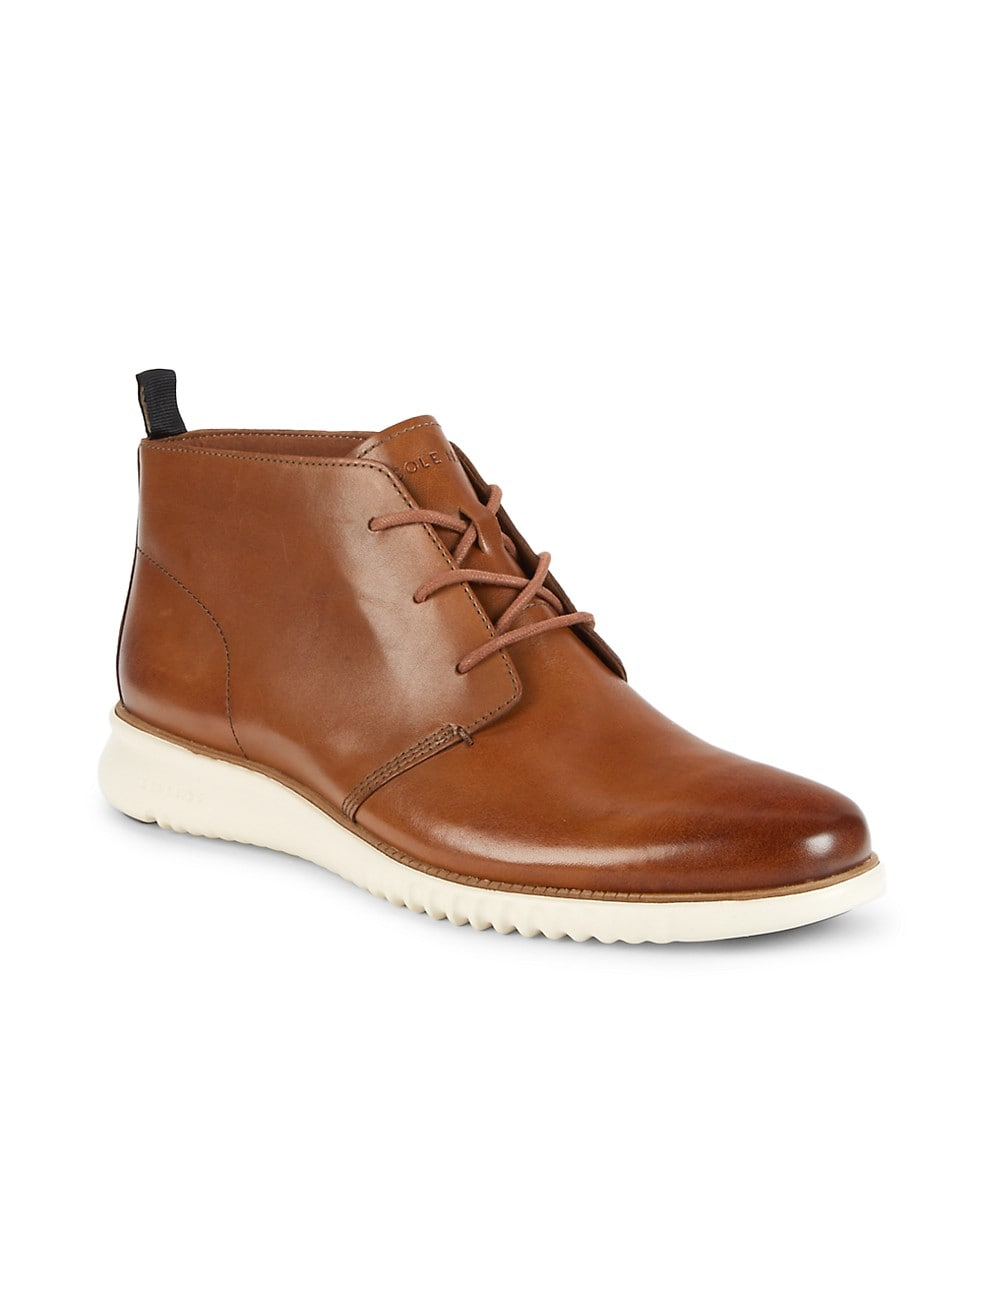 Saks Off 5th: Boots Up to 50% off